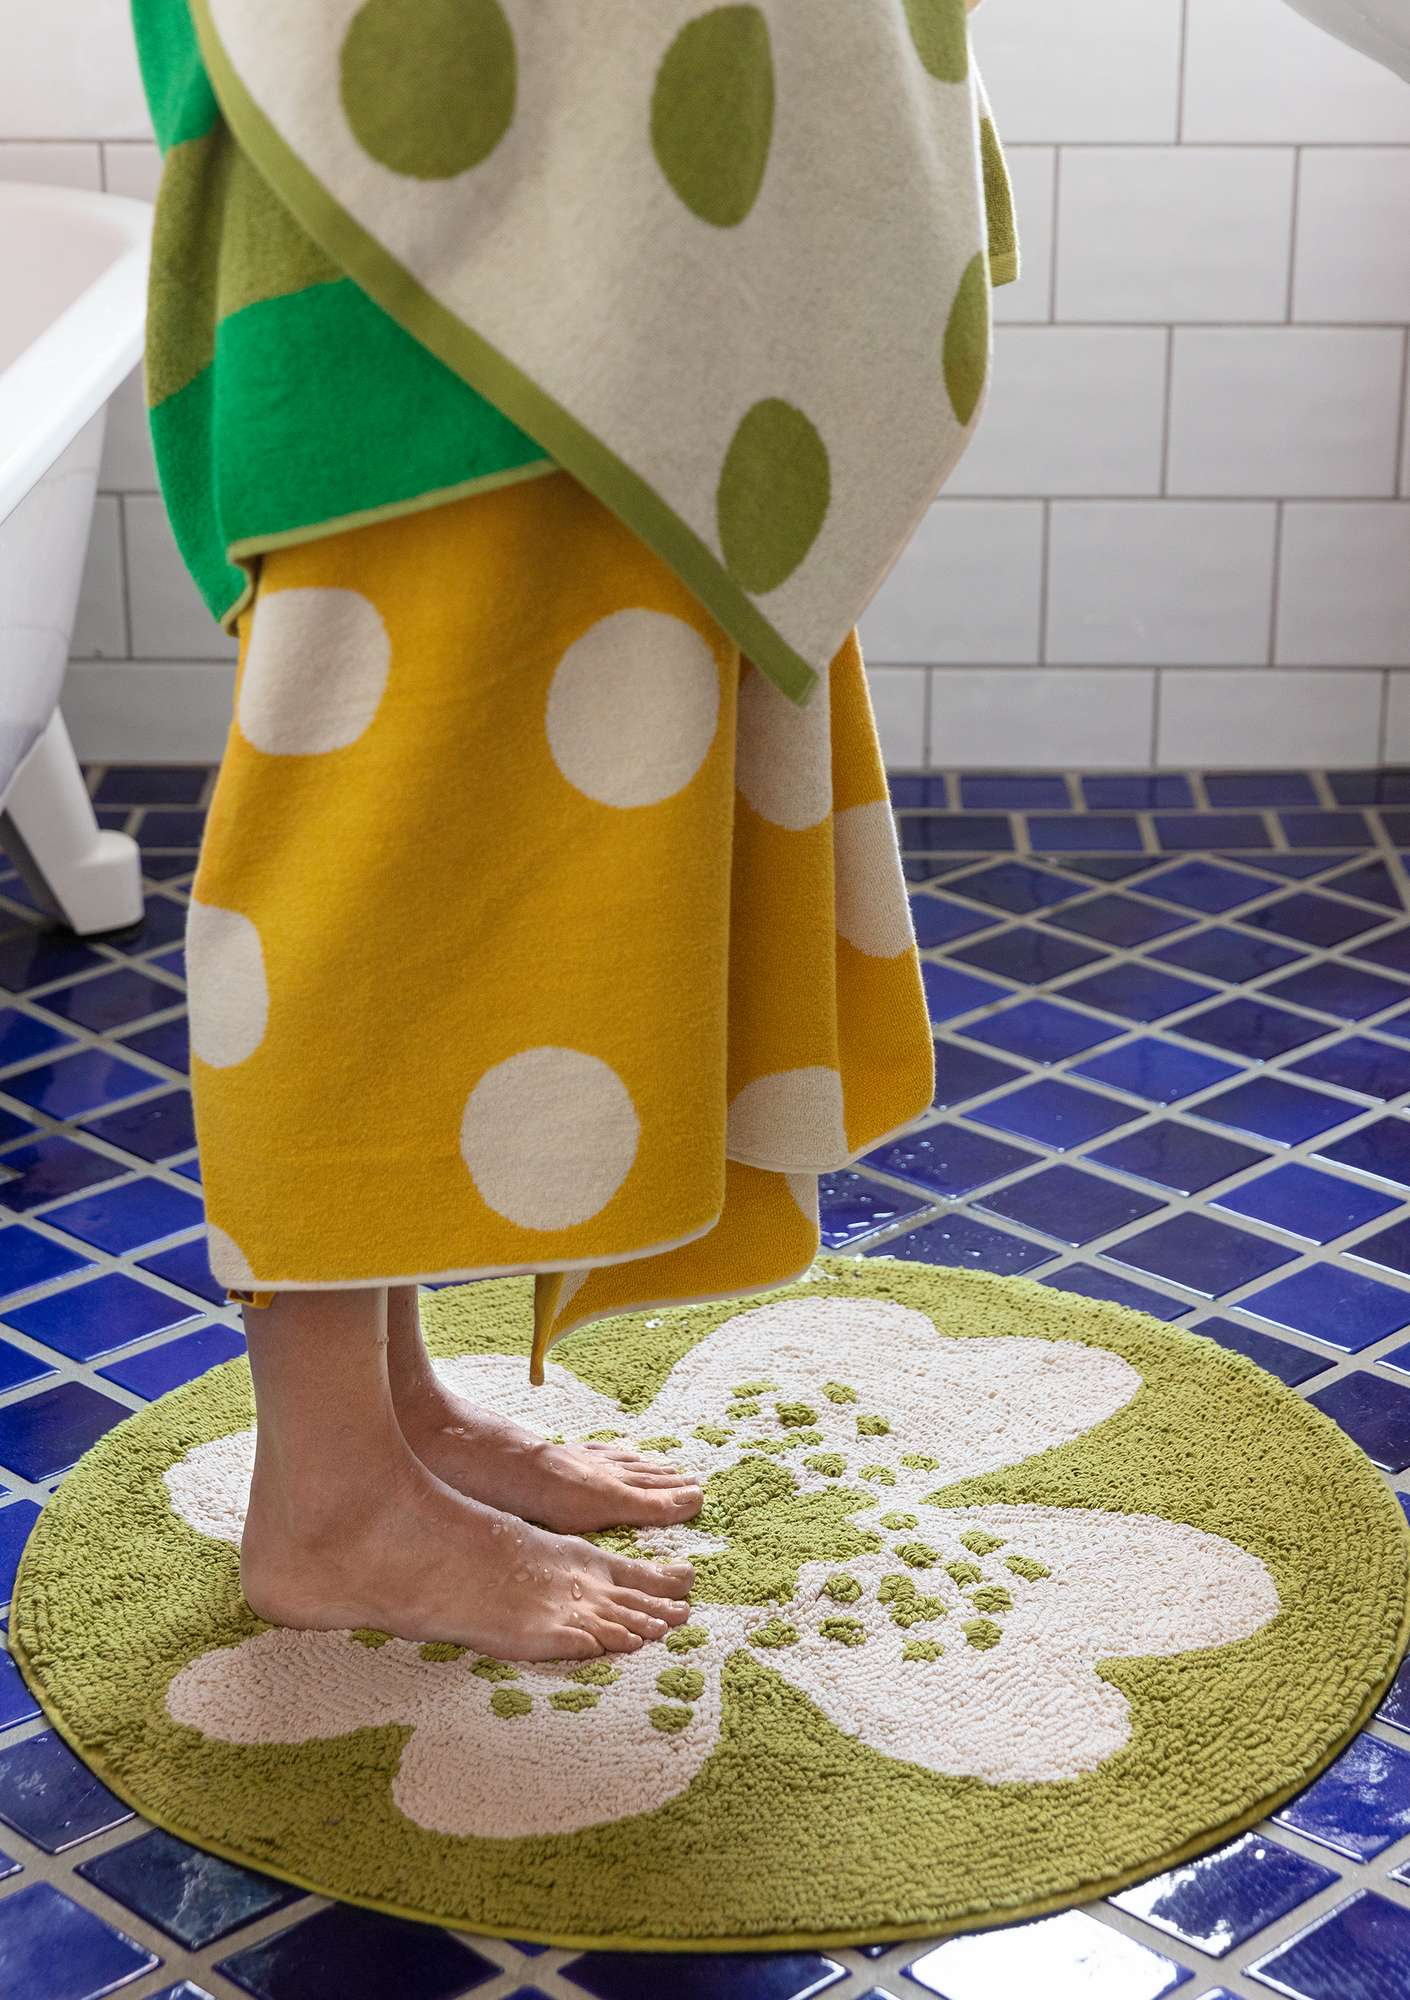 Solig bathroom mat asparagus